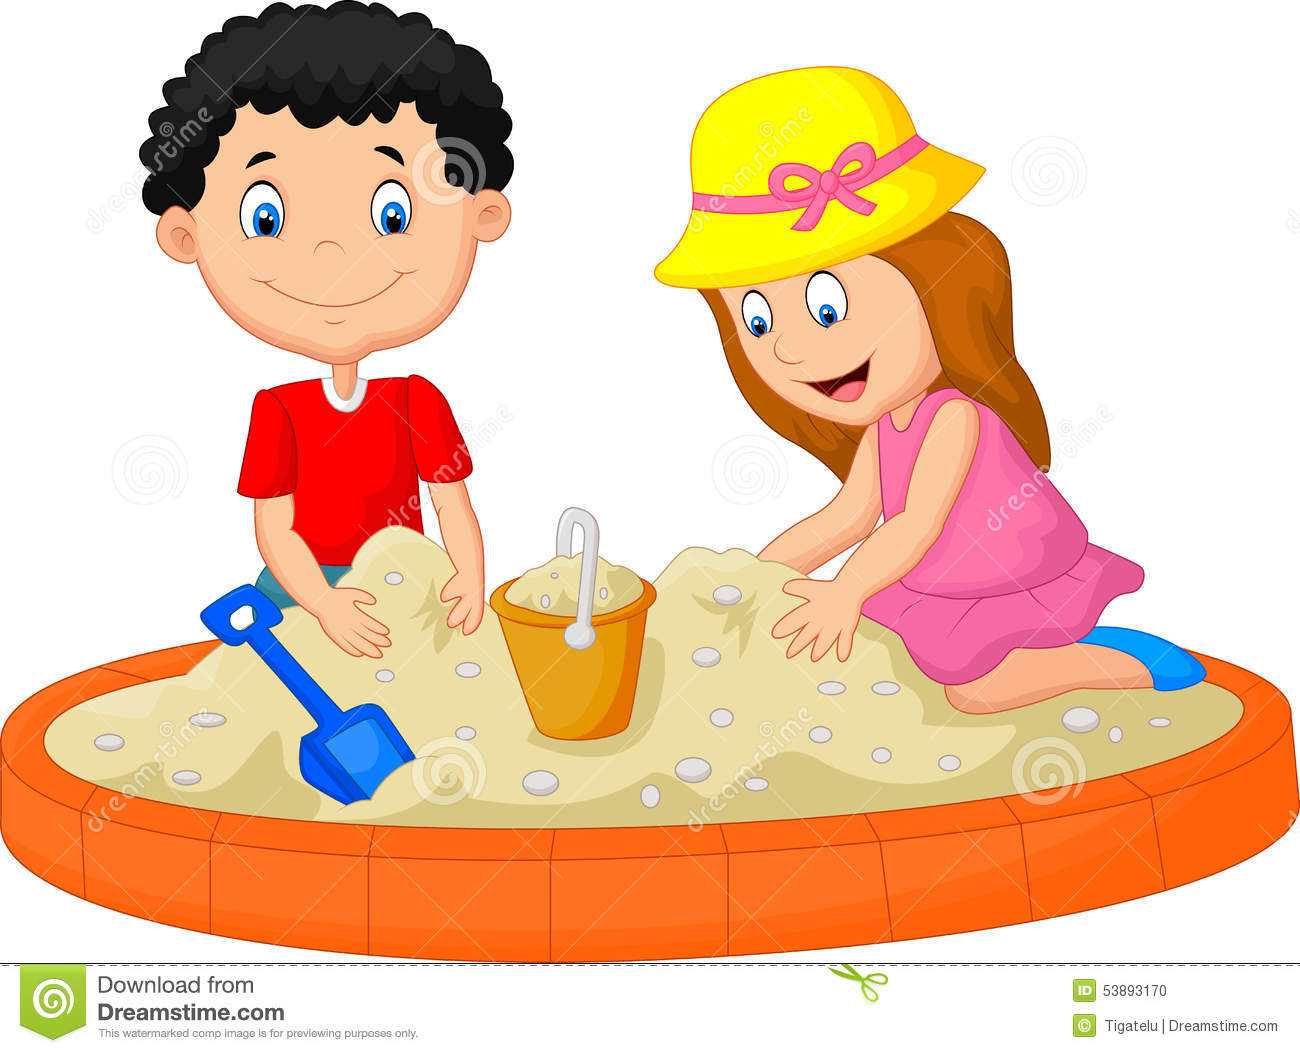 Sand and water play clipart.